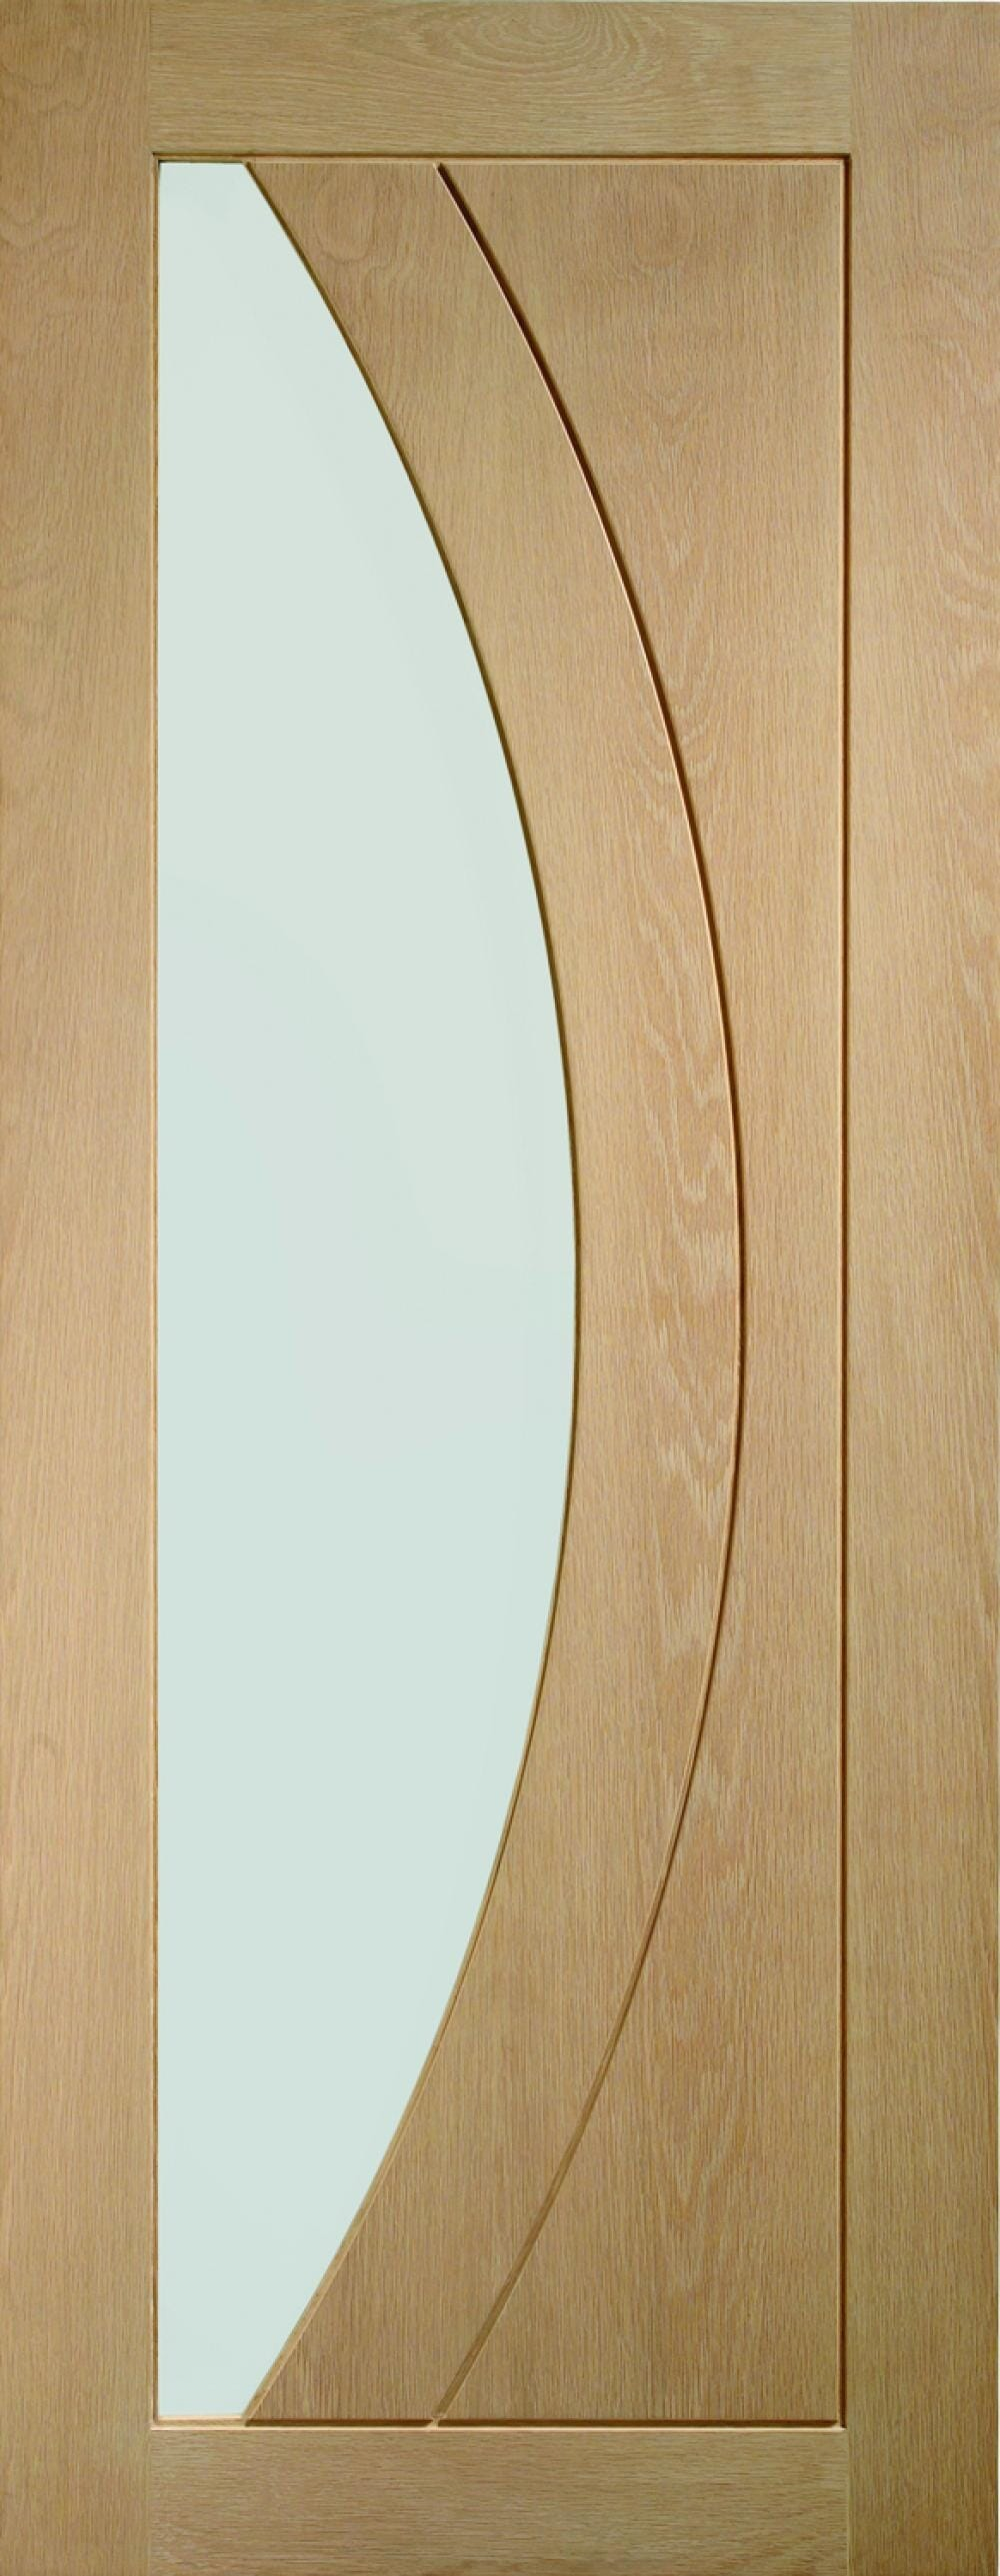 Salerno Oak - Clear Glass Image